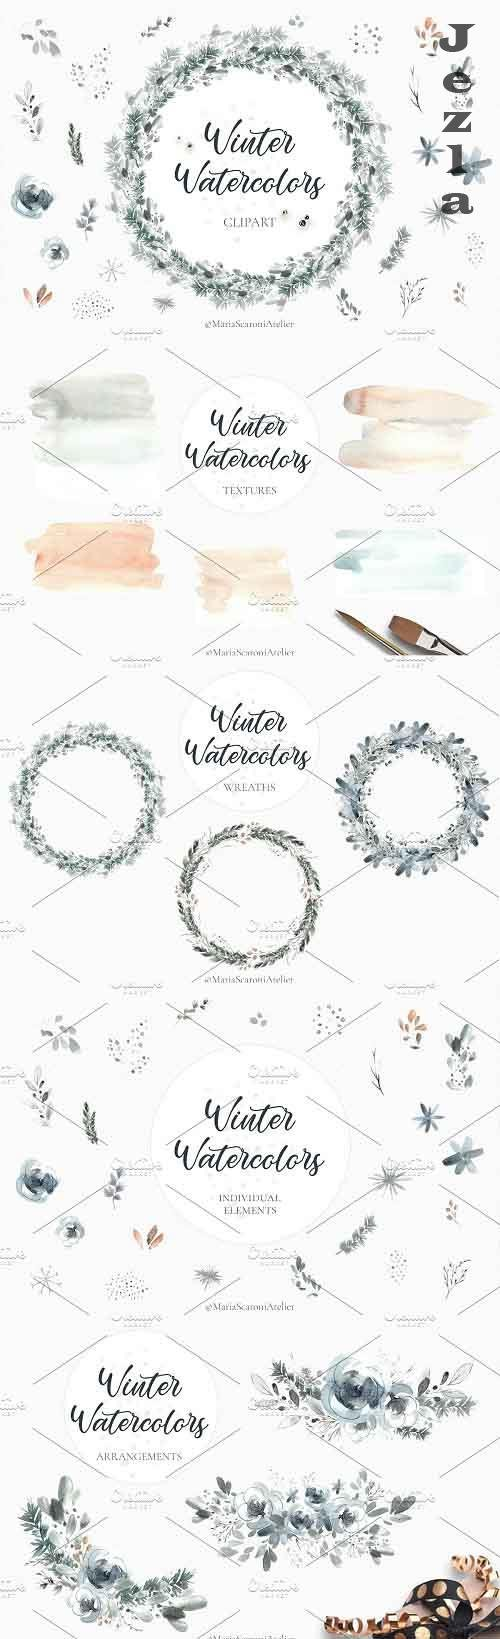 Watercolor Christmas Clipart - 5578154